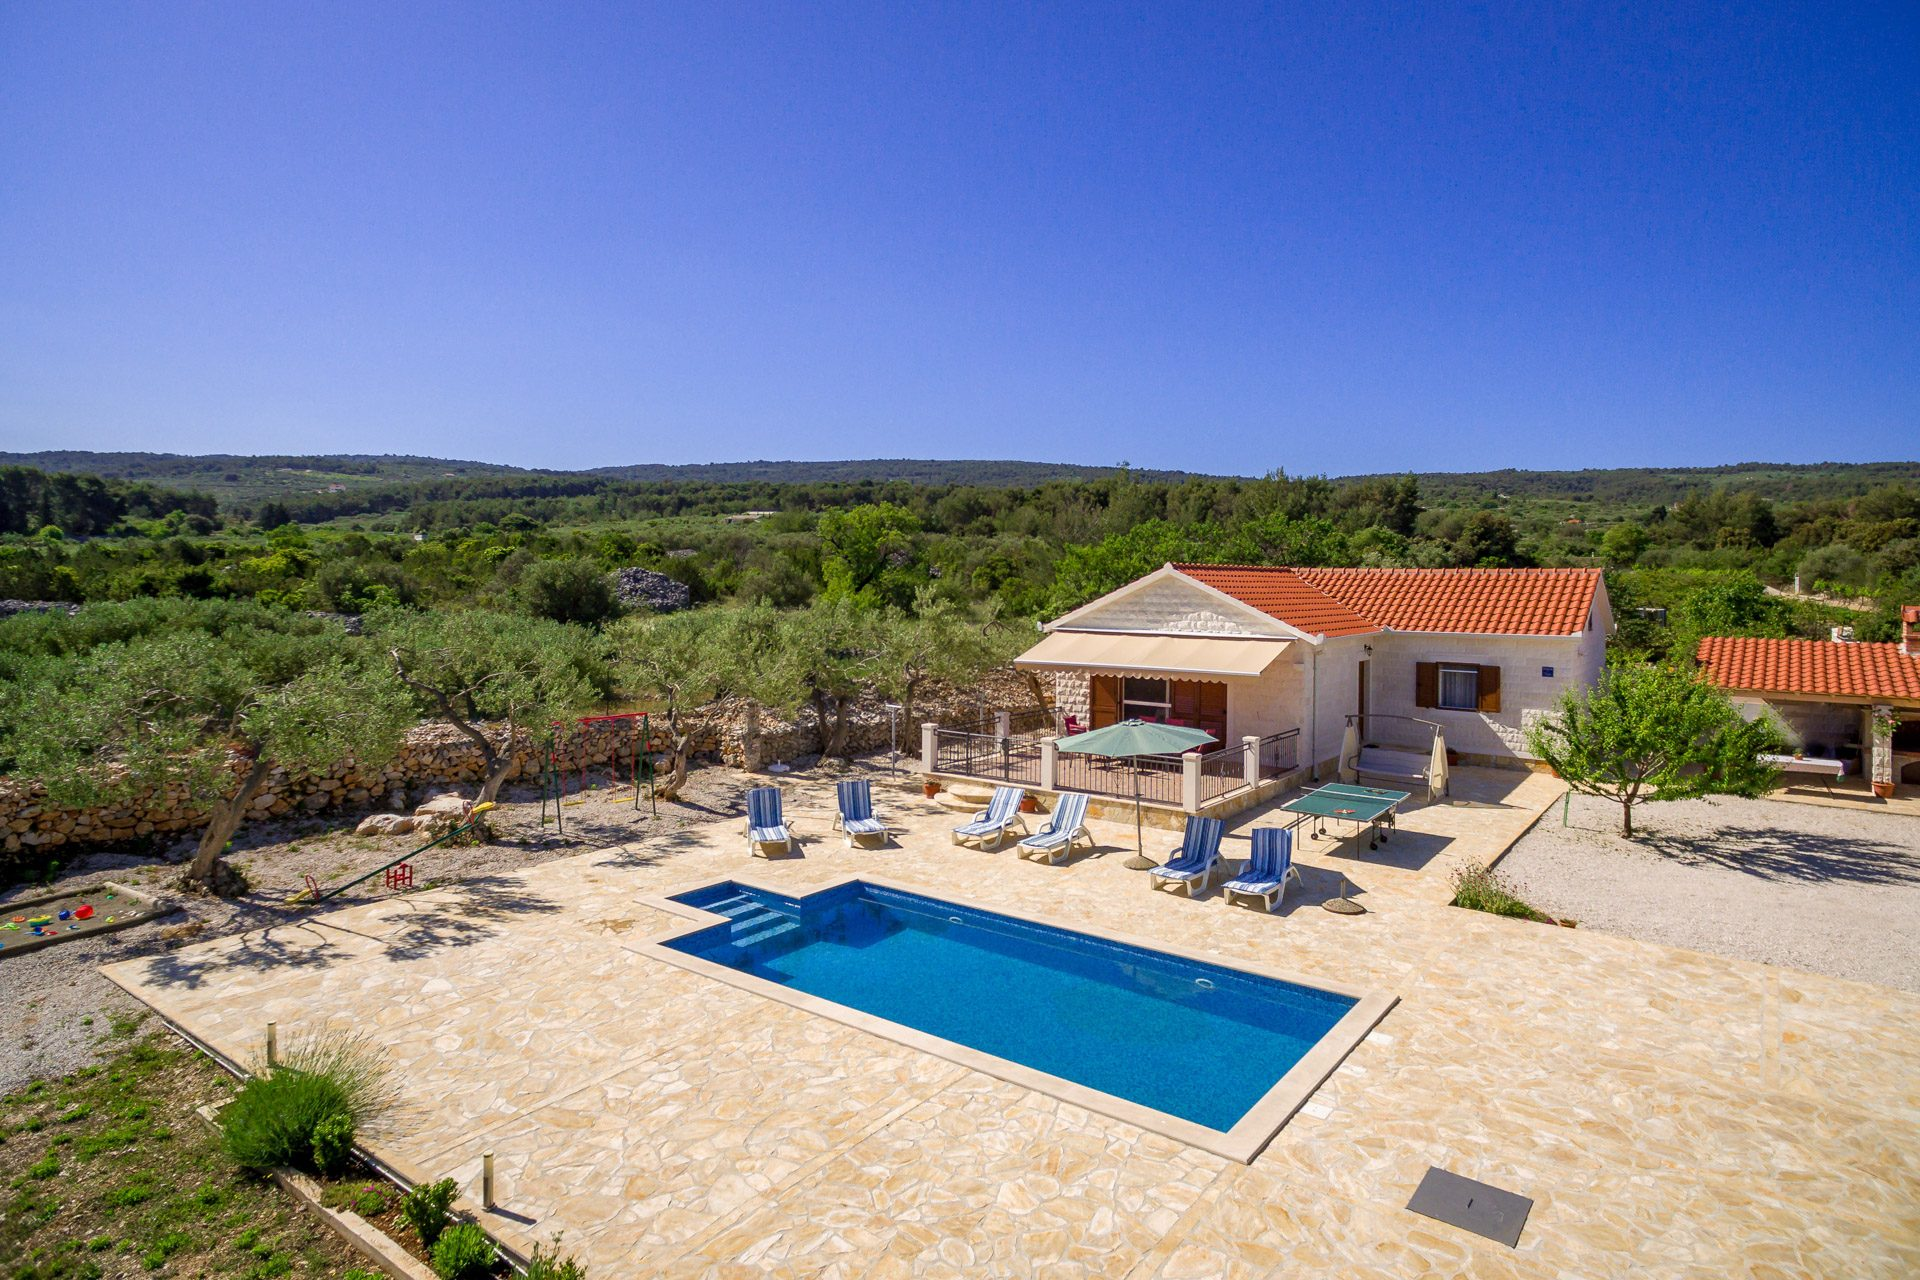 location villa luxe, Croatie, CROBRA 342